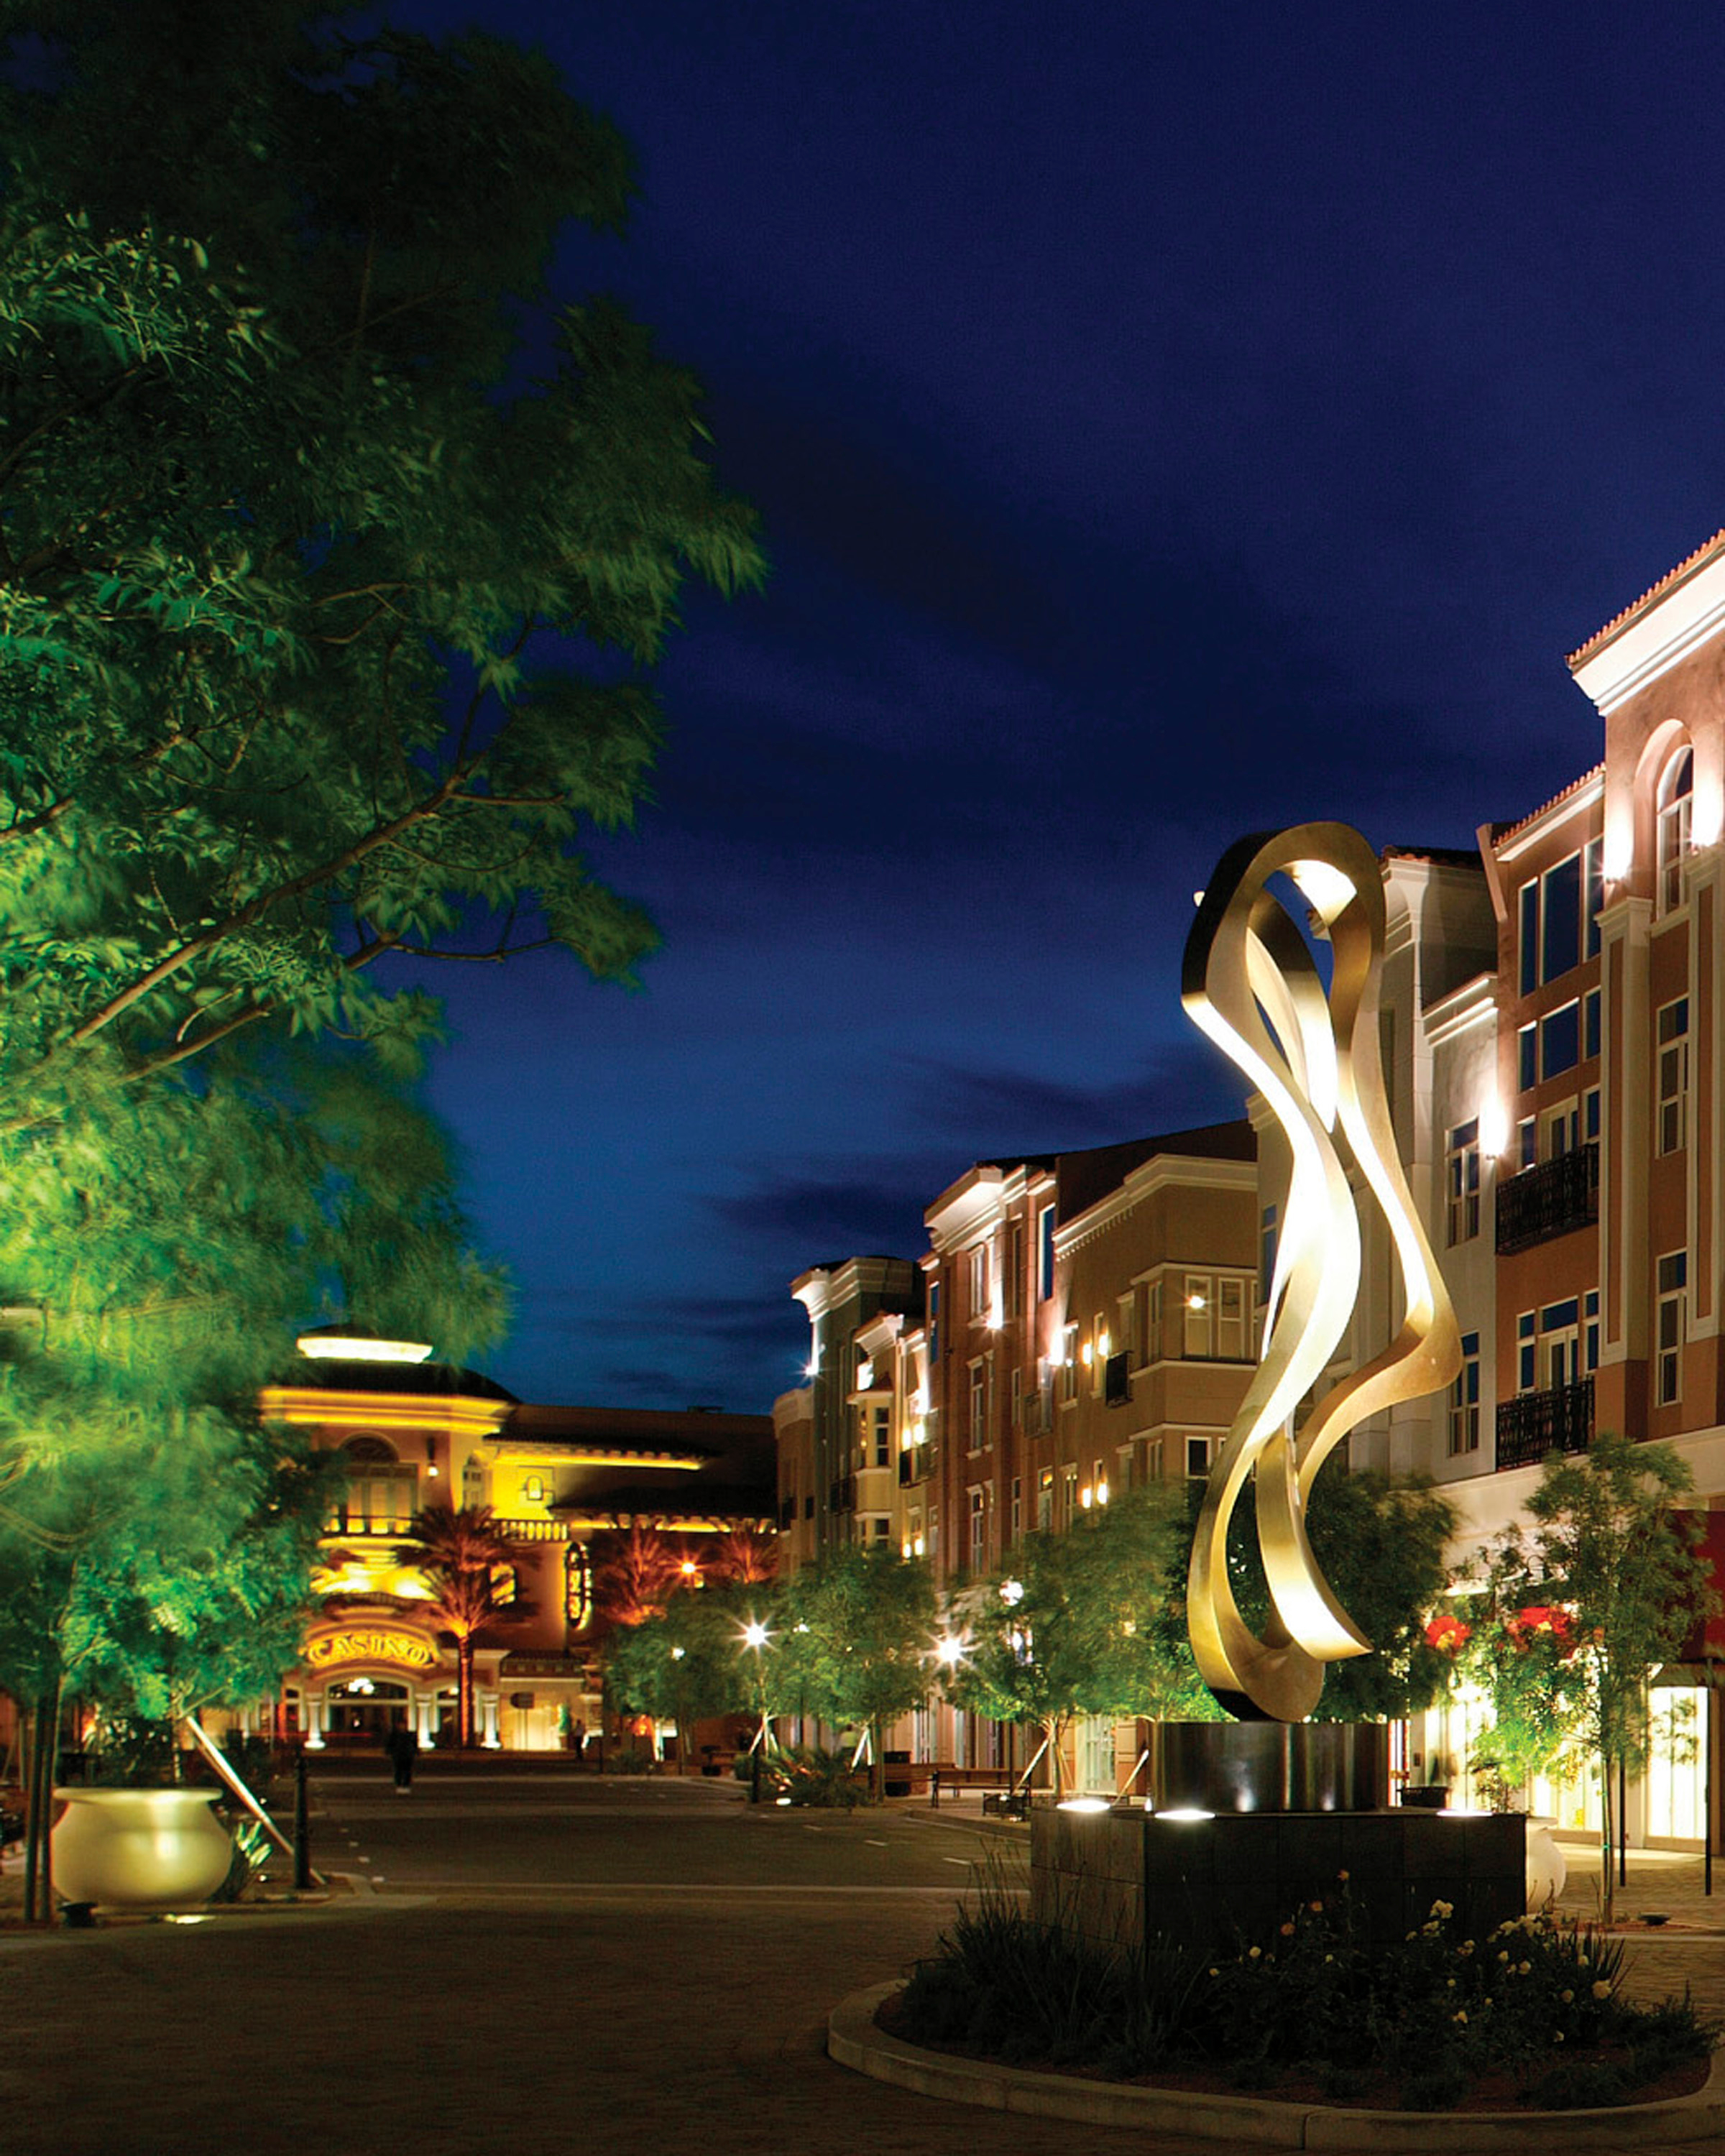 Green valley ranch resort spa casino coupons near me in for Hotel spa resort near me